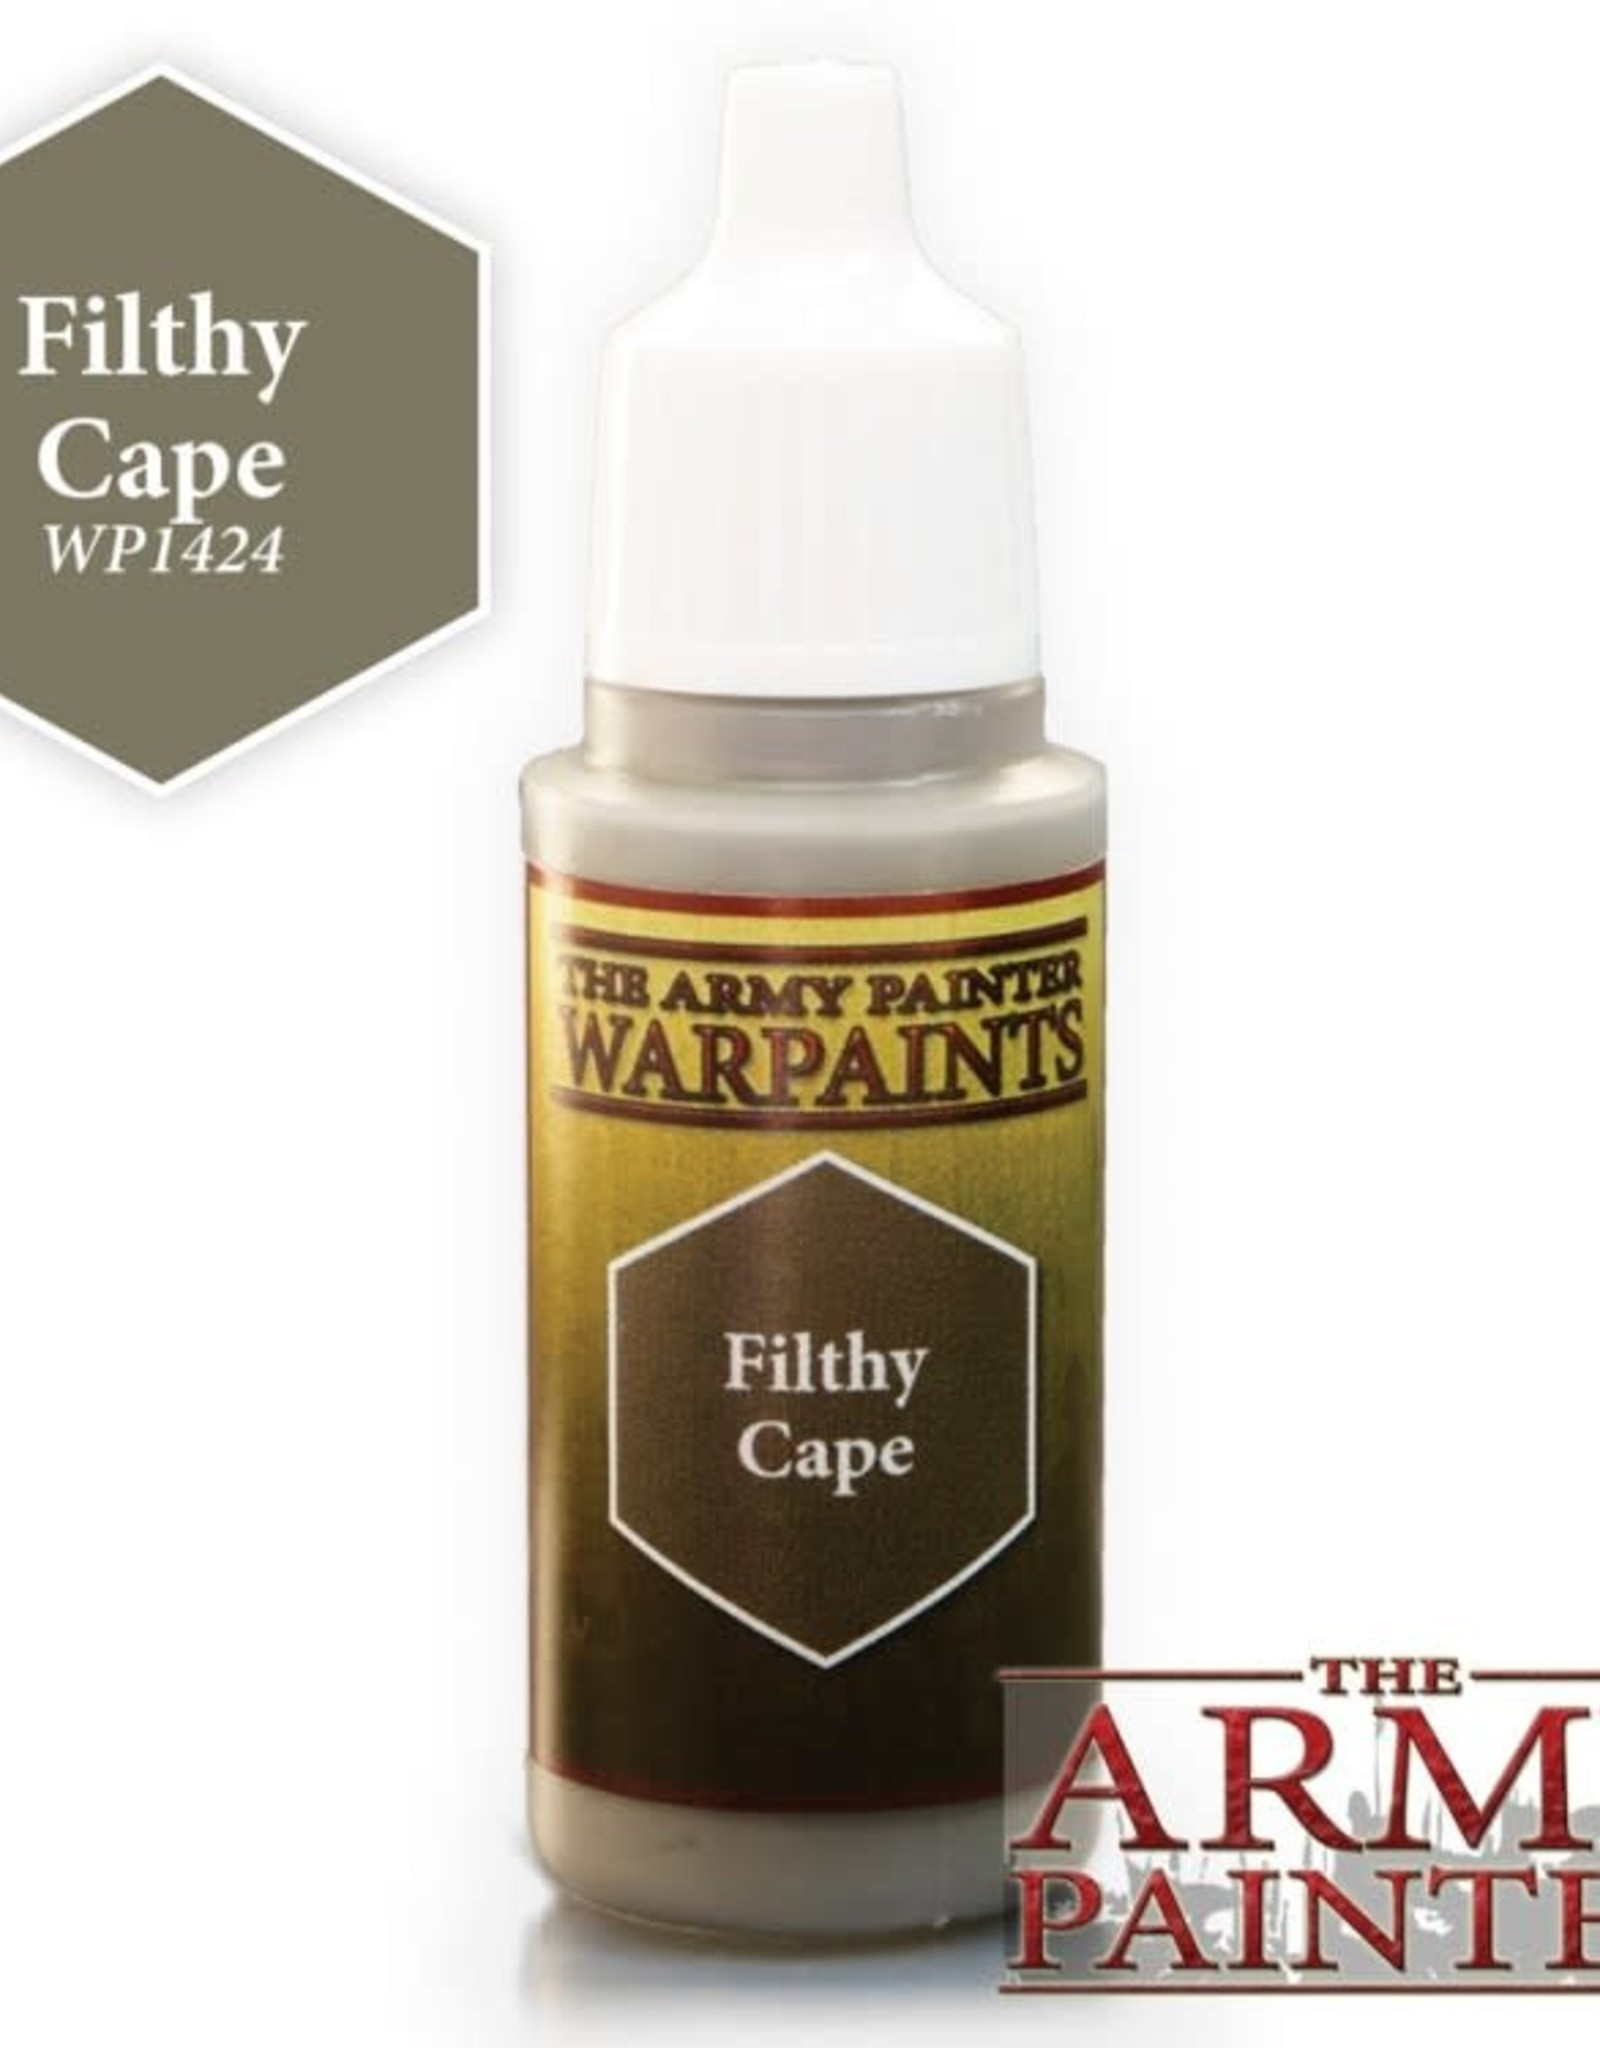 The Army Painter Warpaints - Filthy Cape